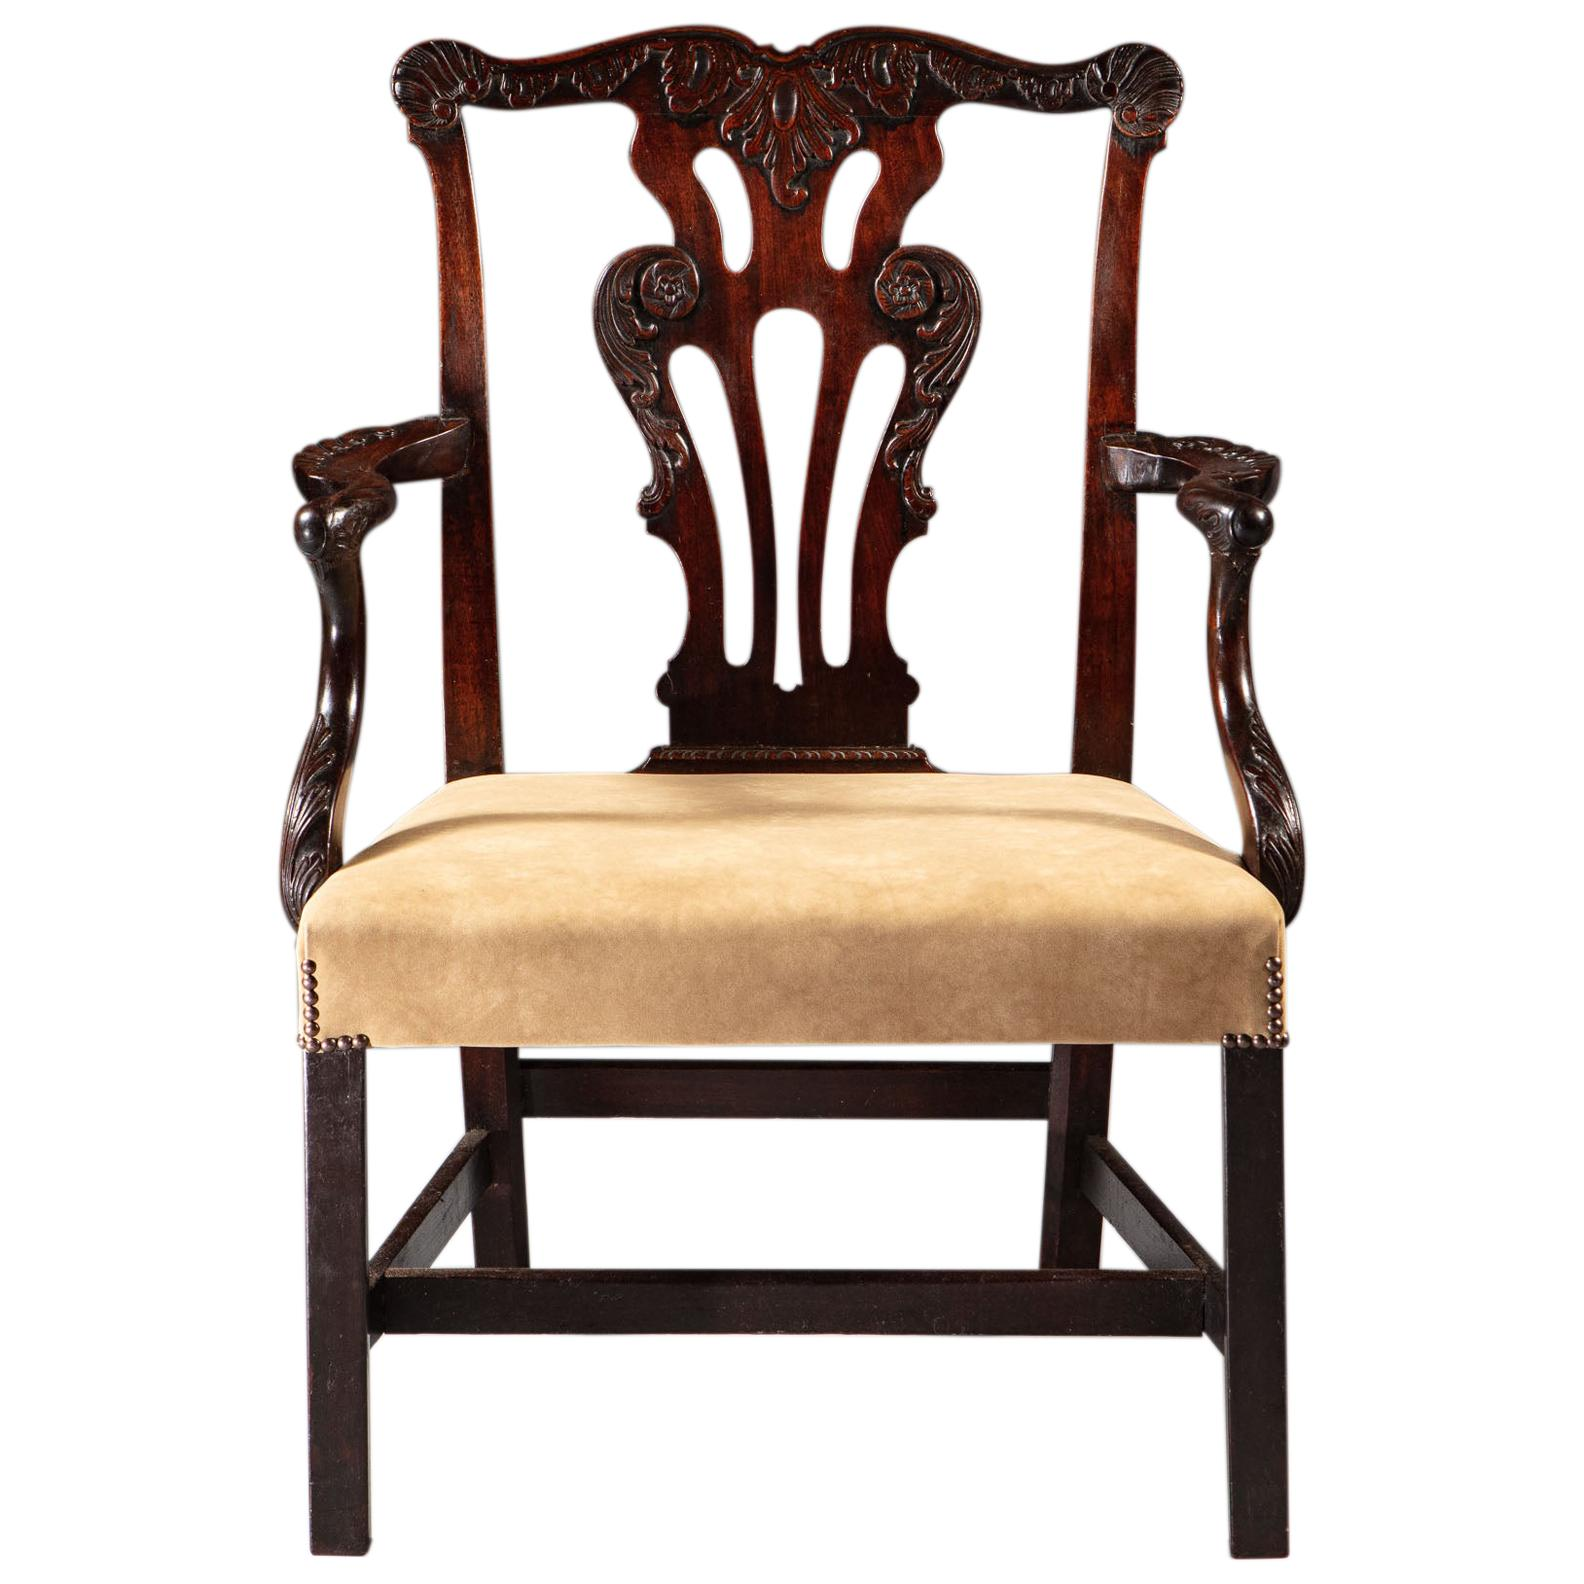 Overscale Mid 18th Century Irish Brown Carved Mahogany Wood Armchair Suede Seat For Sale At 1stdibs